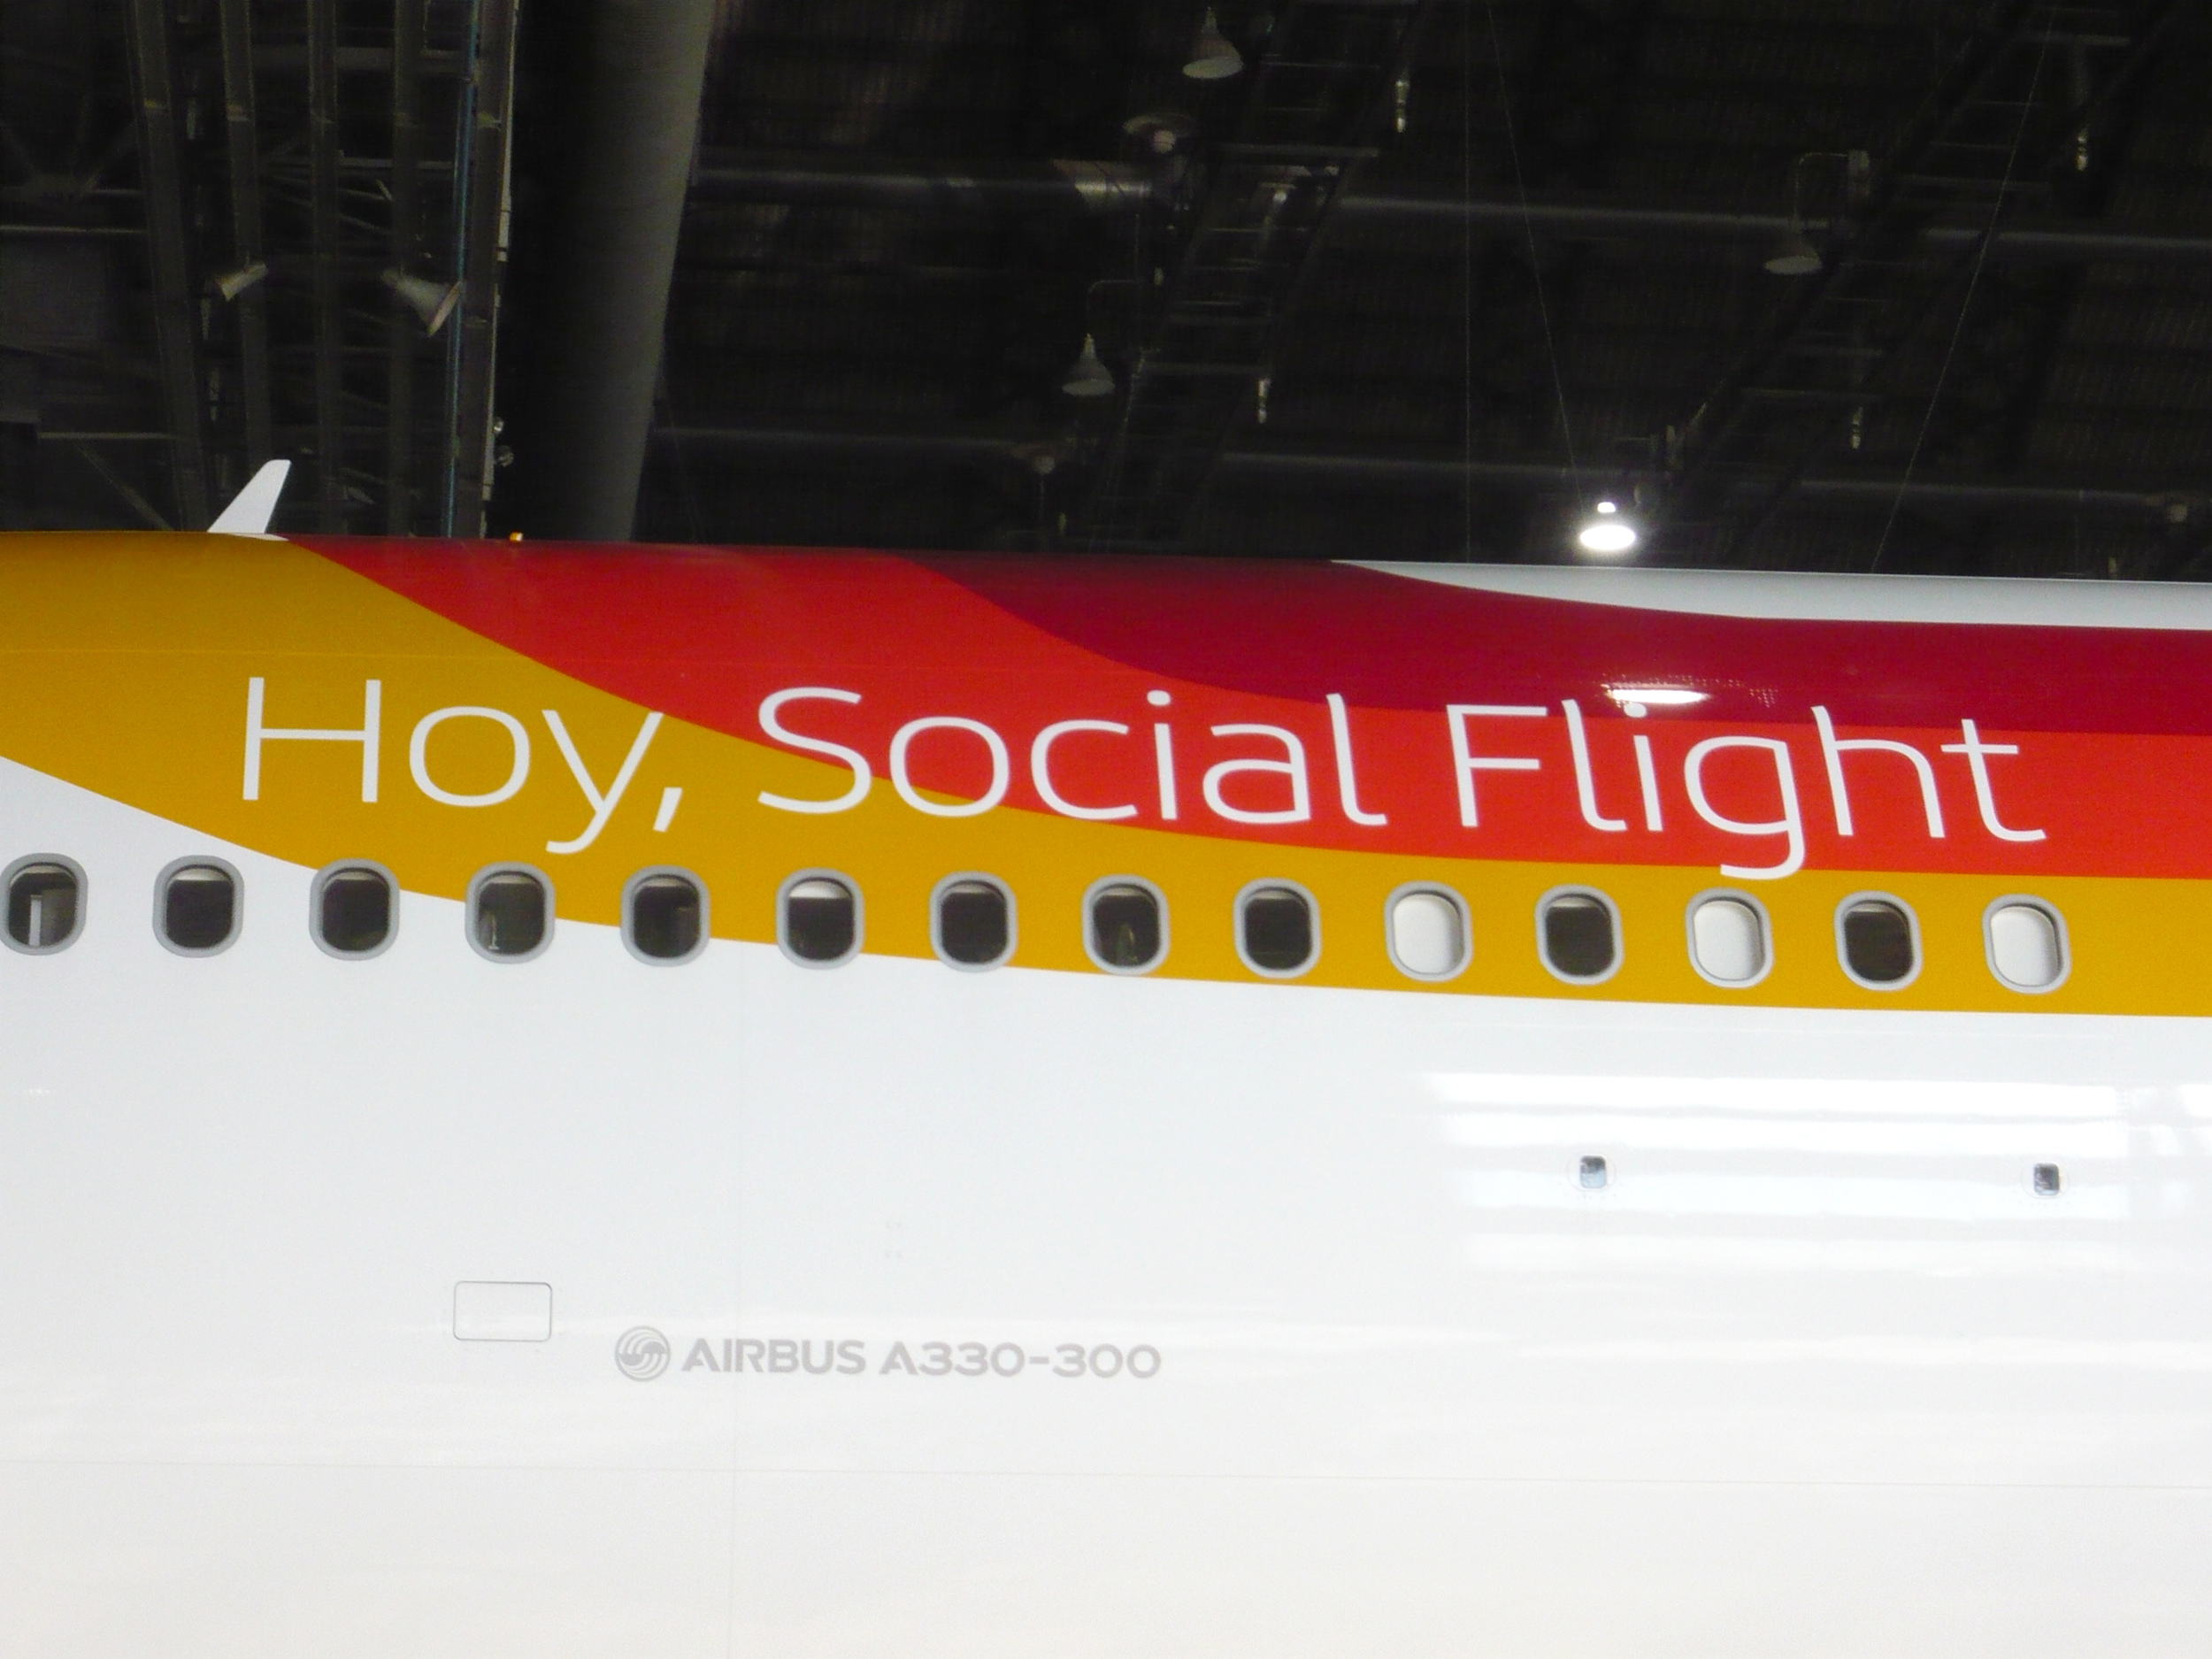 Promoting Iberia's social flight on one of Iberia's new Airbus A330-300